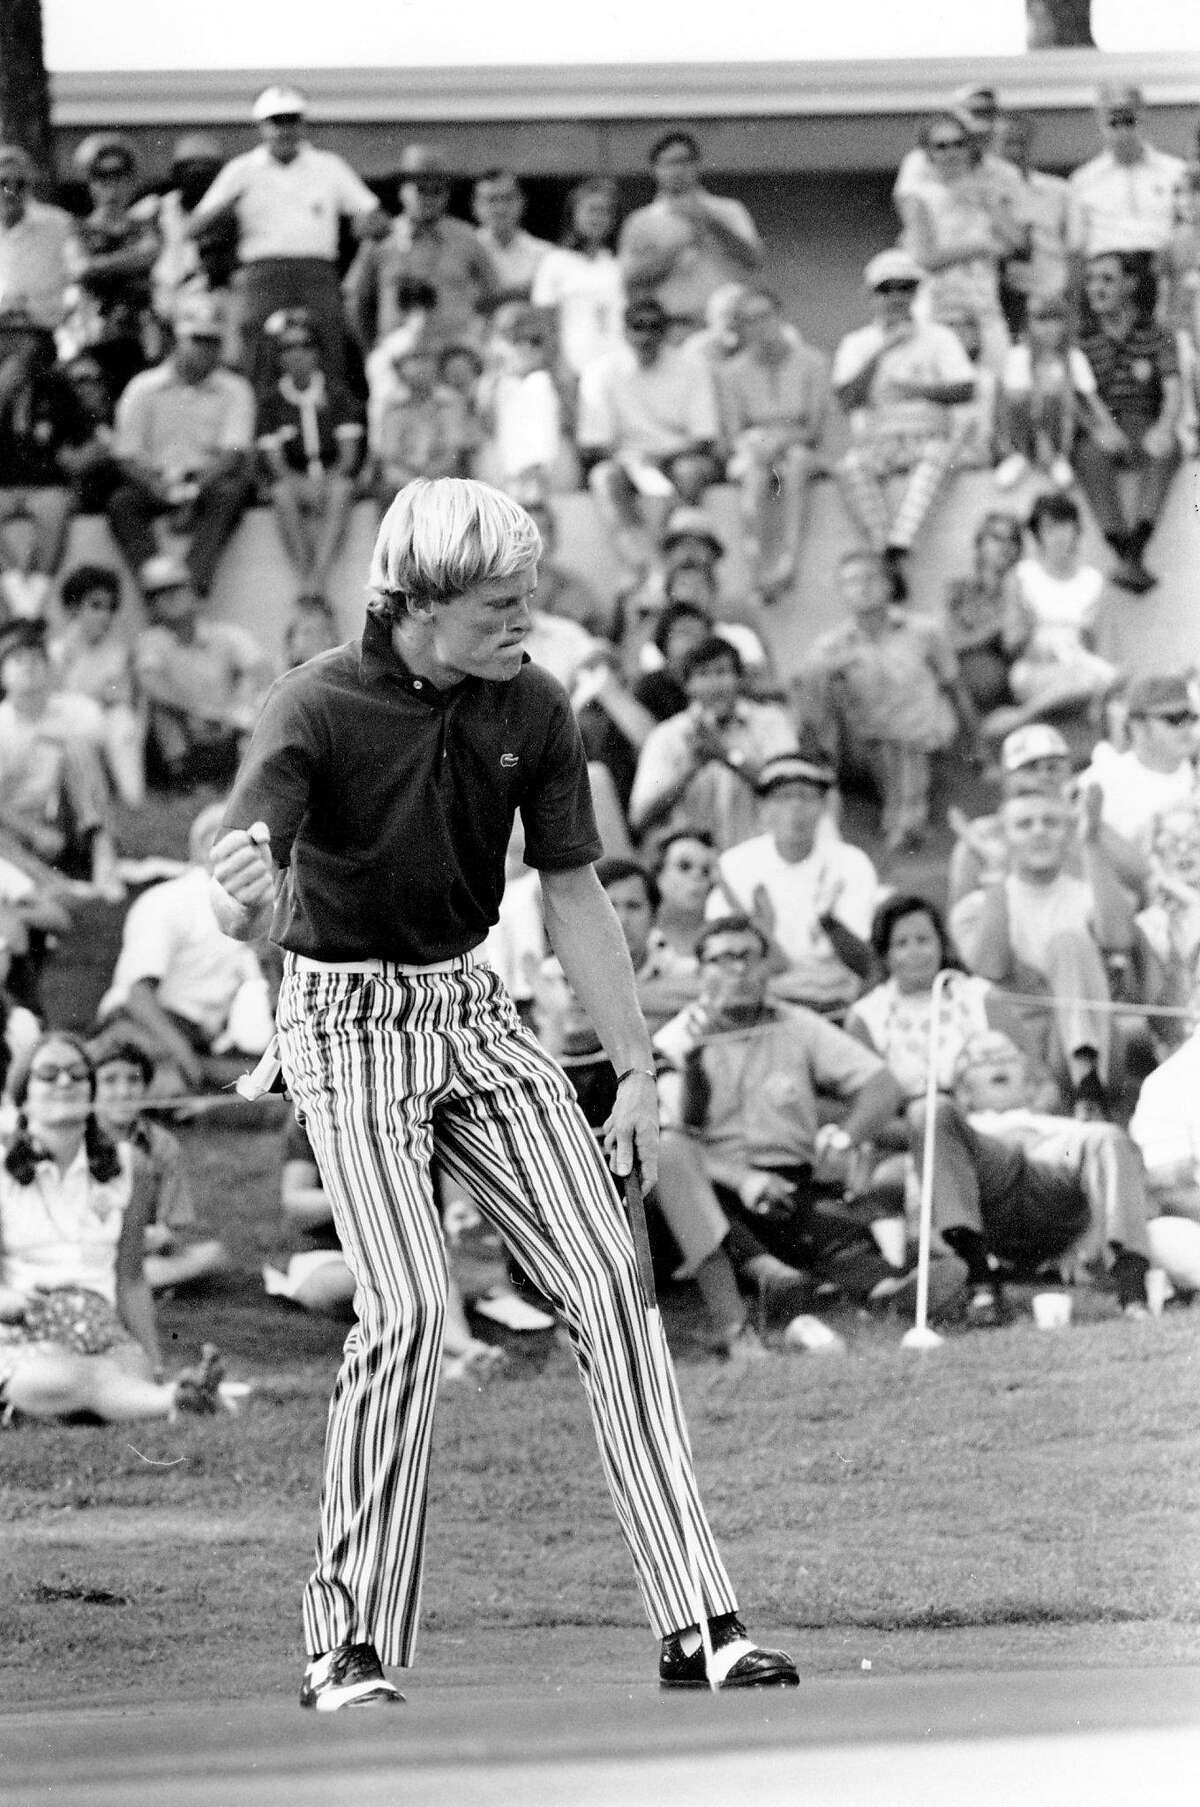 Johnny Miller, 23, reacts as his putt for a bird falls in on No. 18 at the Southern Open Championship at Green Island Club in Columbia, Ga., on Sept. 12, 1971. The birdie gave Miller a 13 under par total for the event. It is his first tour win. (AP Photo)